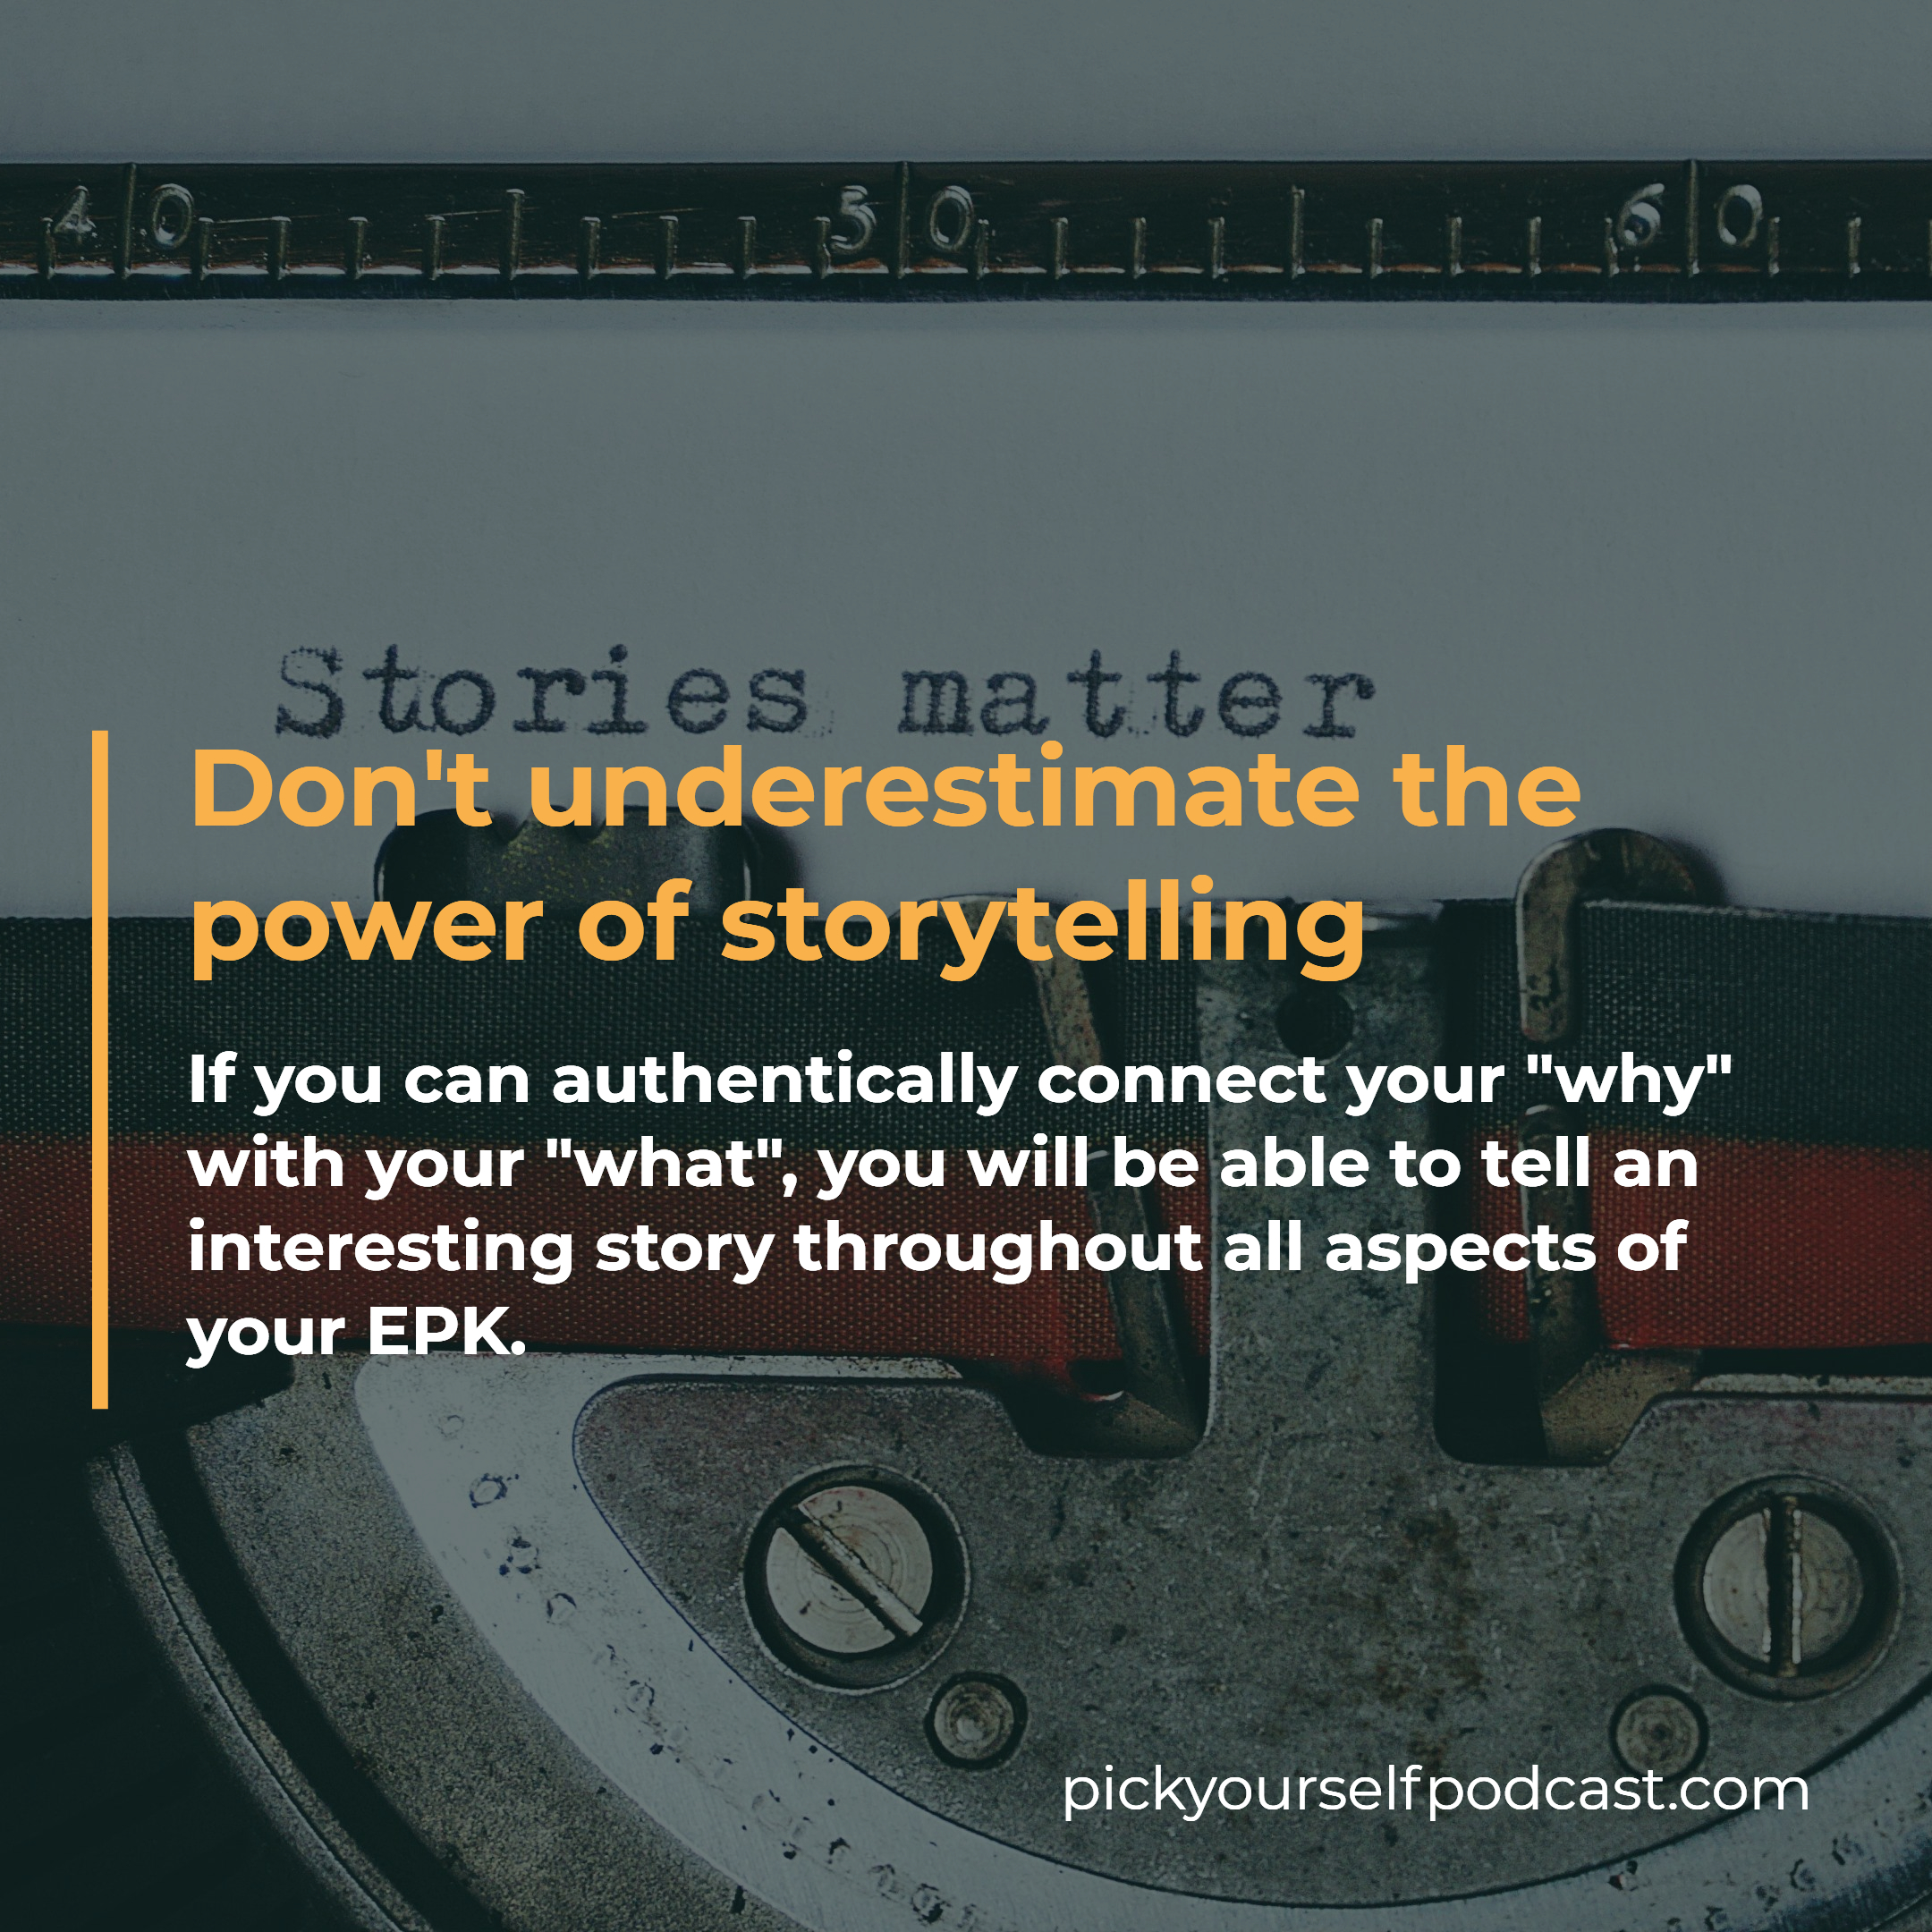 A music EP can benefit from the power of storytelling.